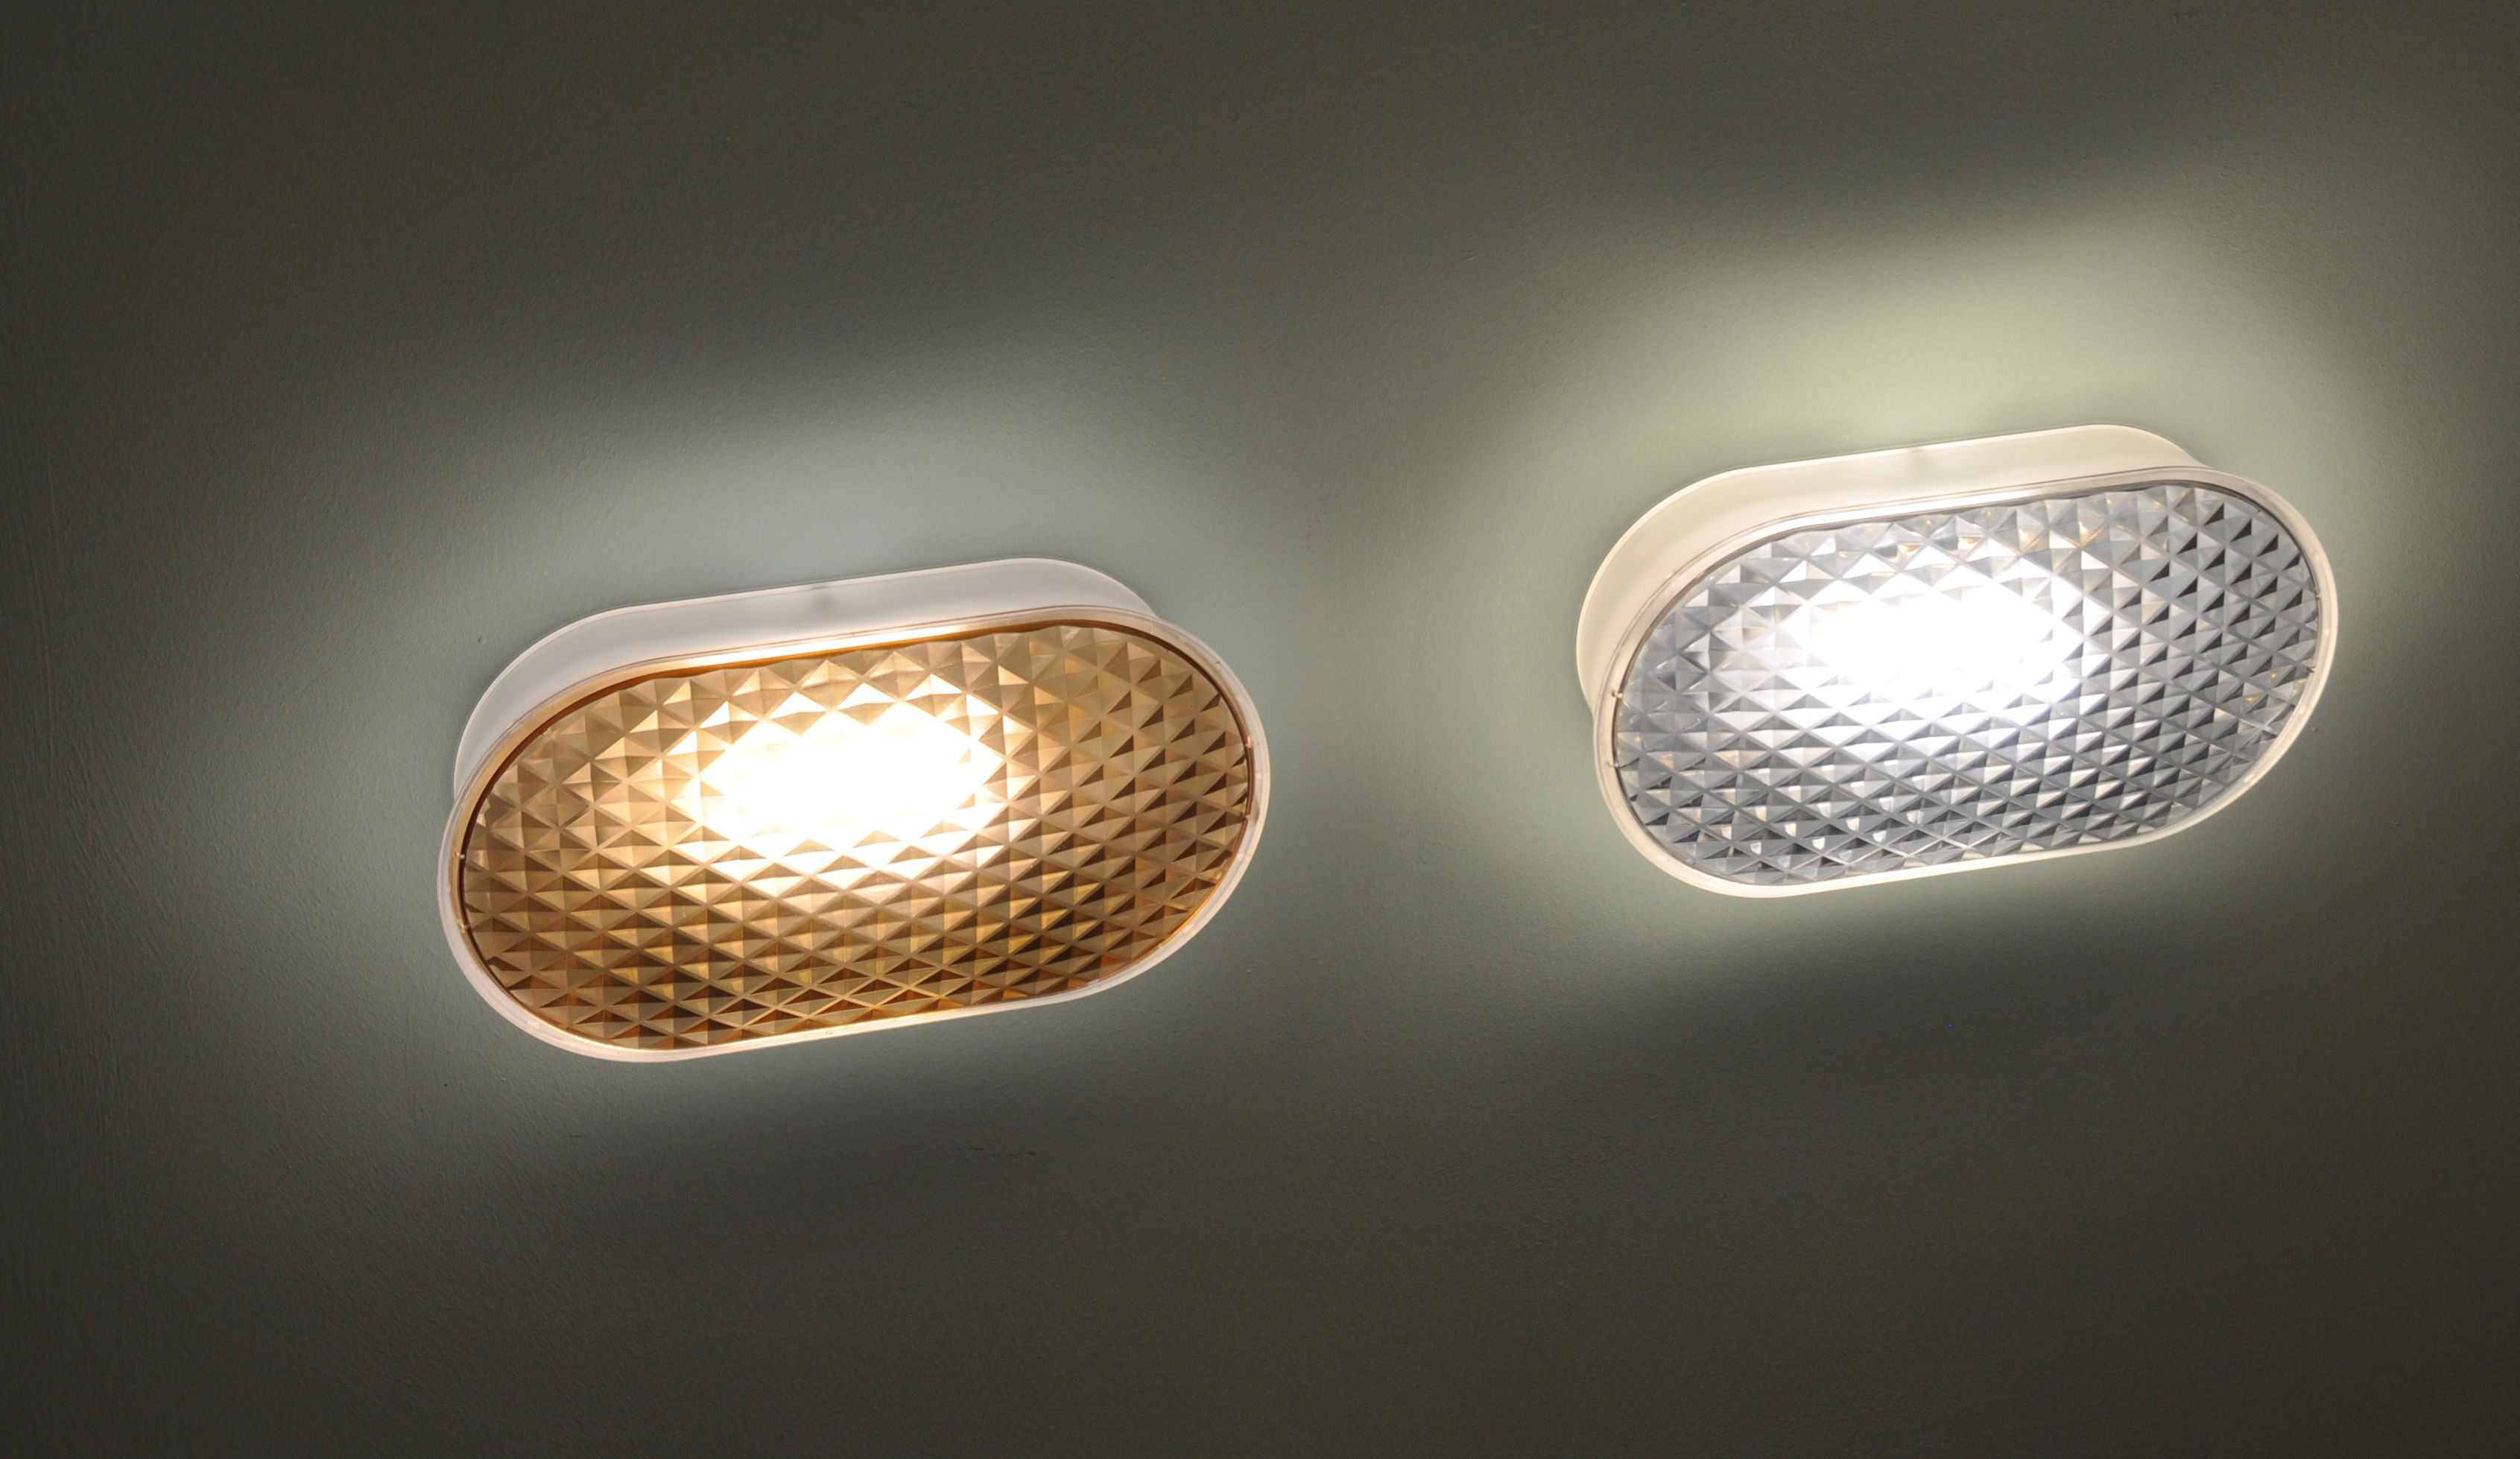 Vitro applique led plafoniera bronzo by fontana arte made in